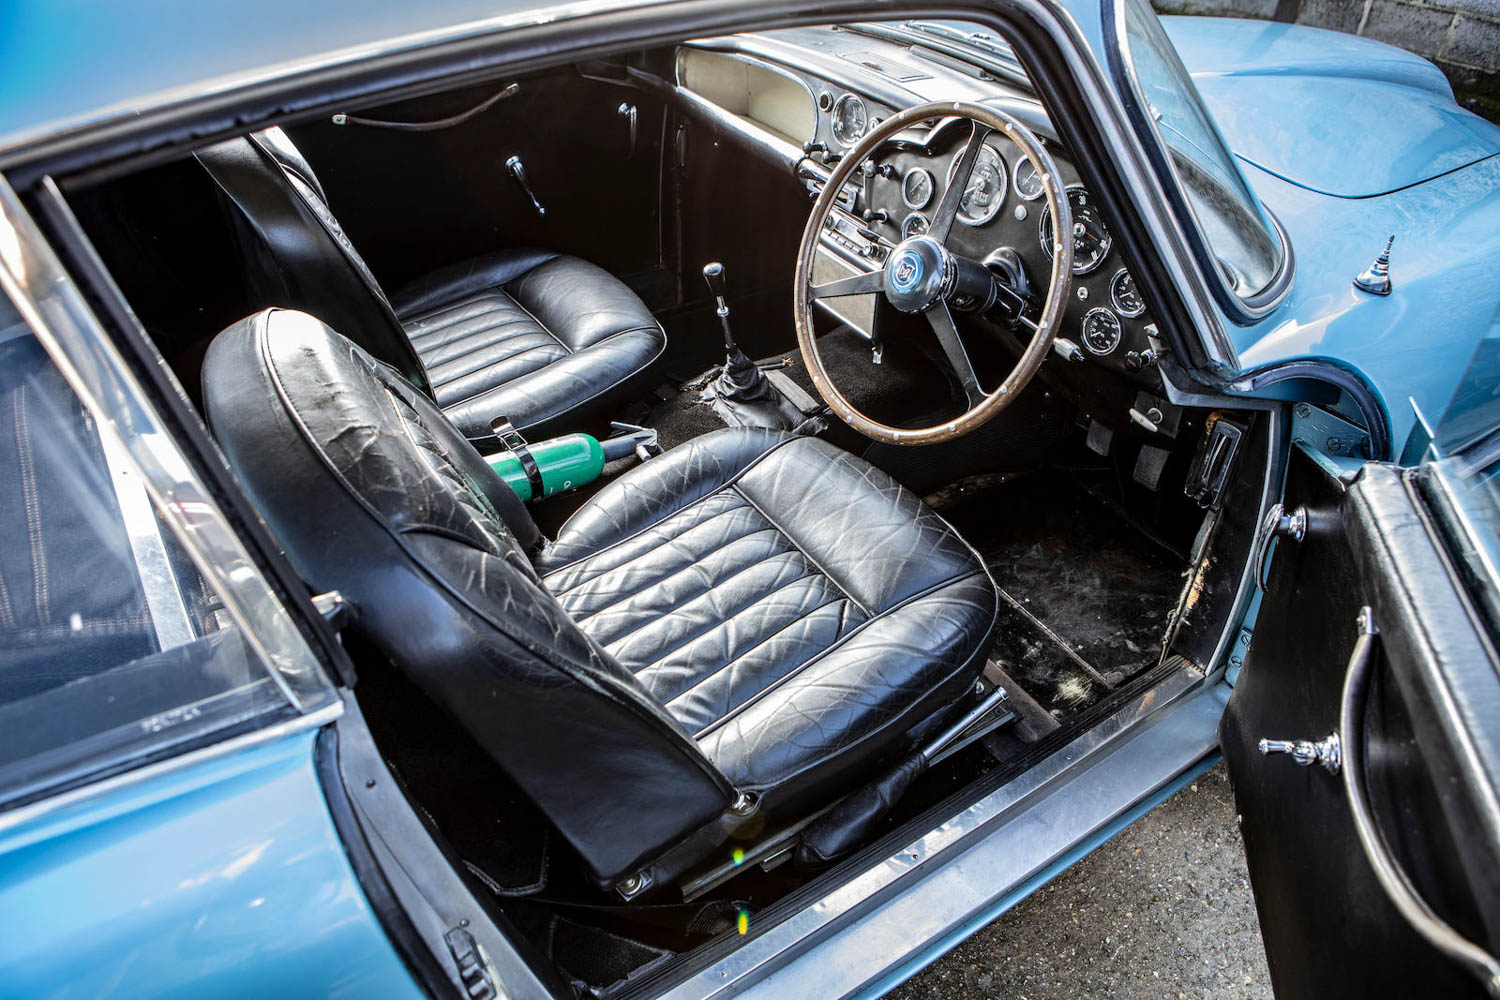 1961 Aston Martin DB4GT 'Lightweight' 4.2-Litre Sports Saloon